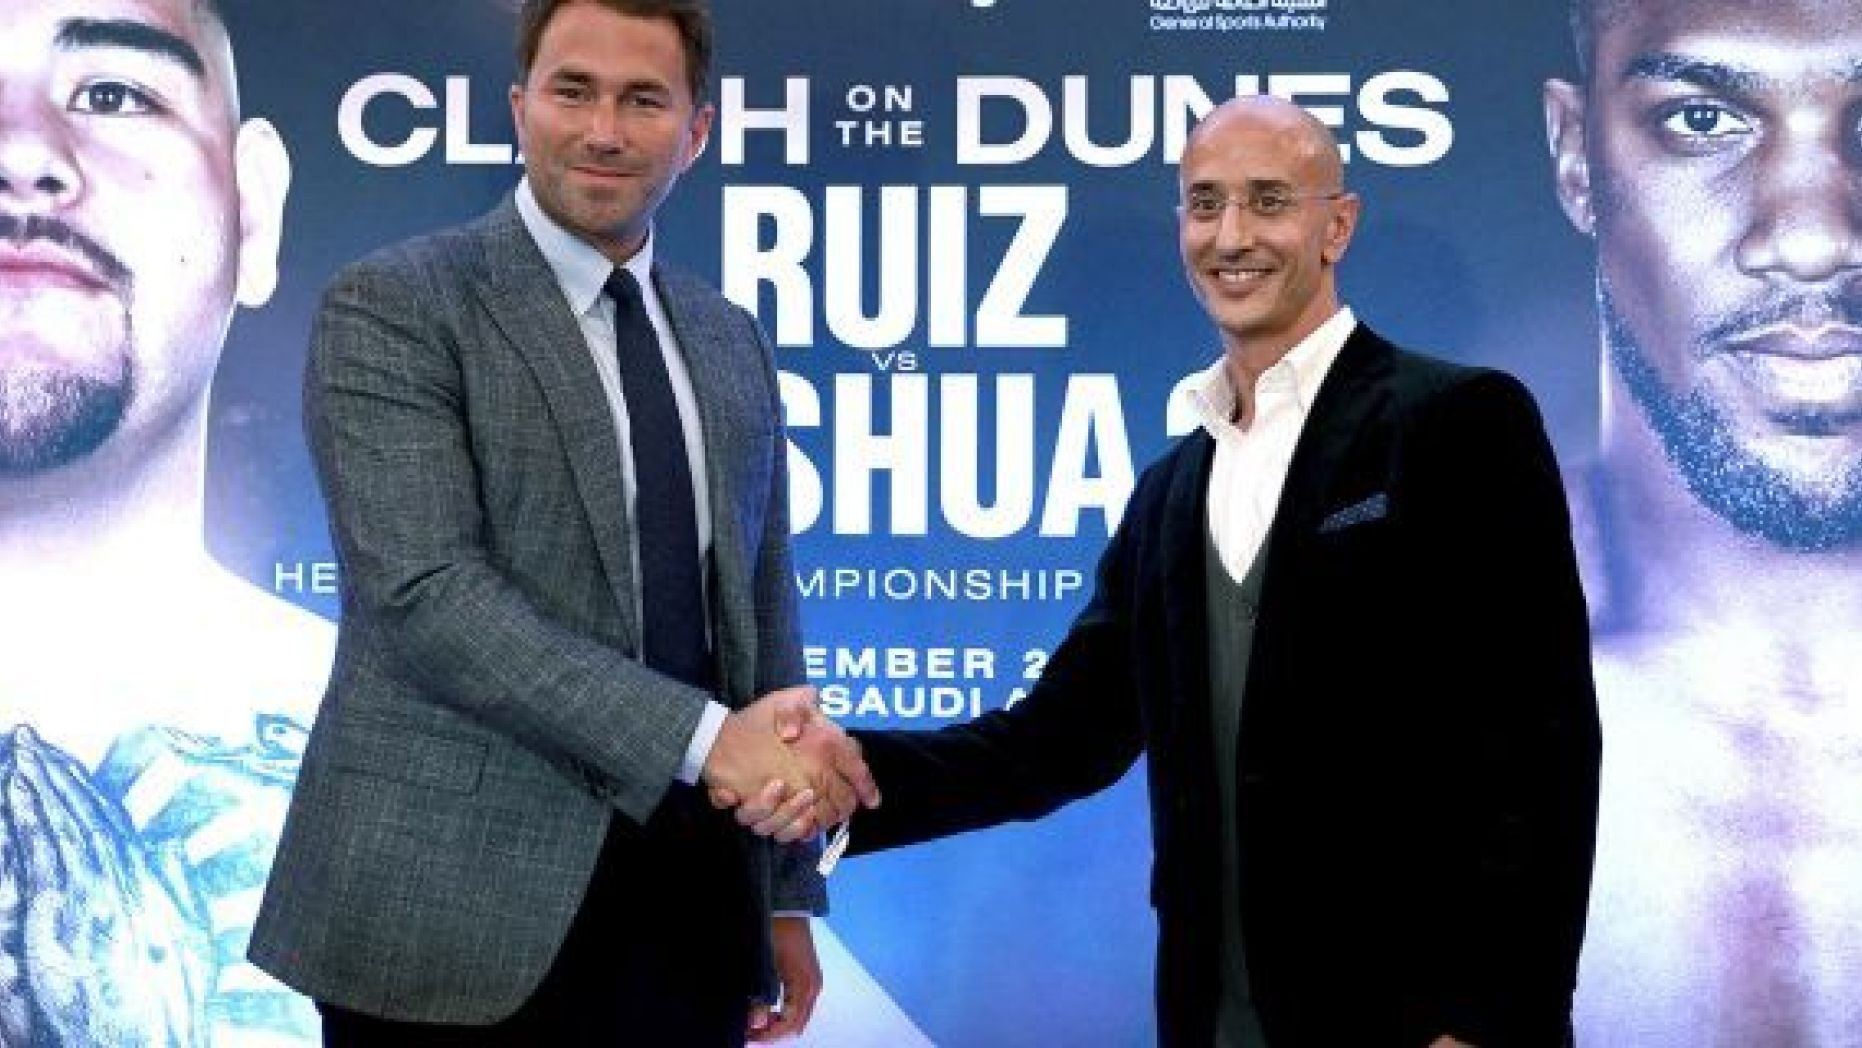 Boxing promoters Eddie Hearn and managing partner of Skill Challenge Entertainment Omar Khalil shake hands, during a press conference at The Savoy Hotel, London, Monday, Aug. 12, 2019. Anthony Joshua